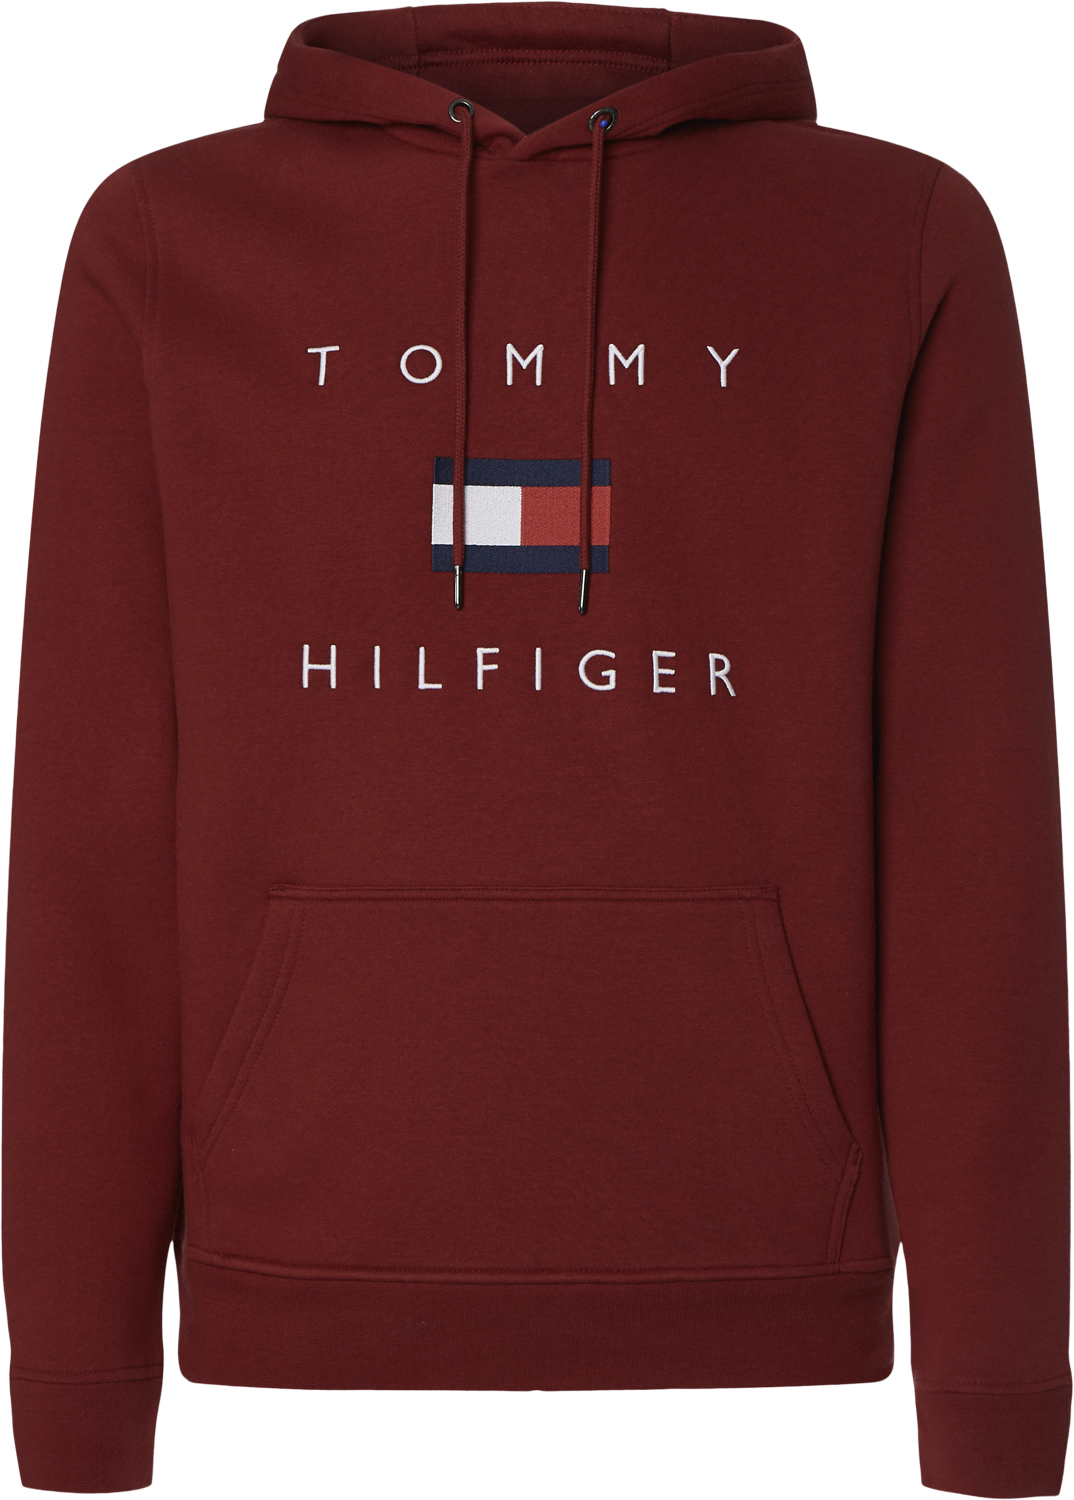 Tommy Hilfiger Flag Hoodie - Regatta Red